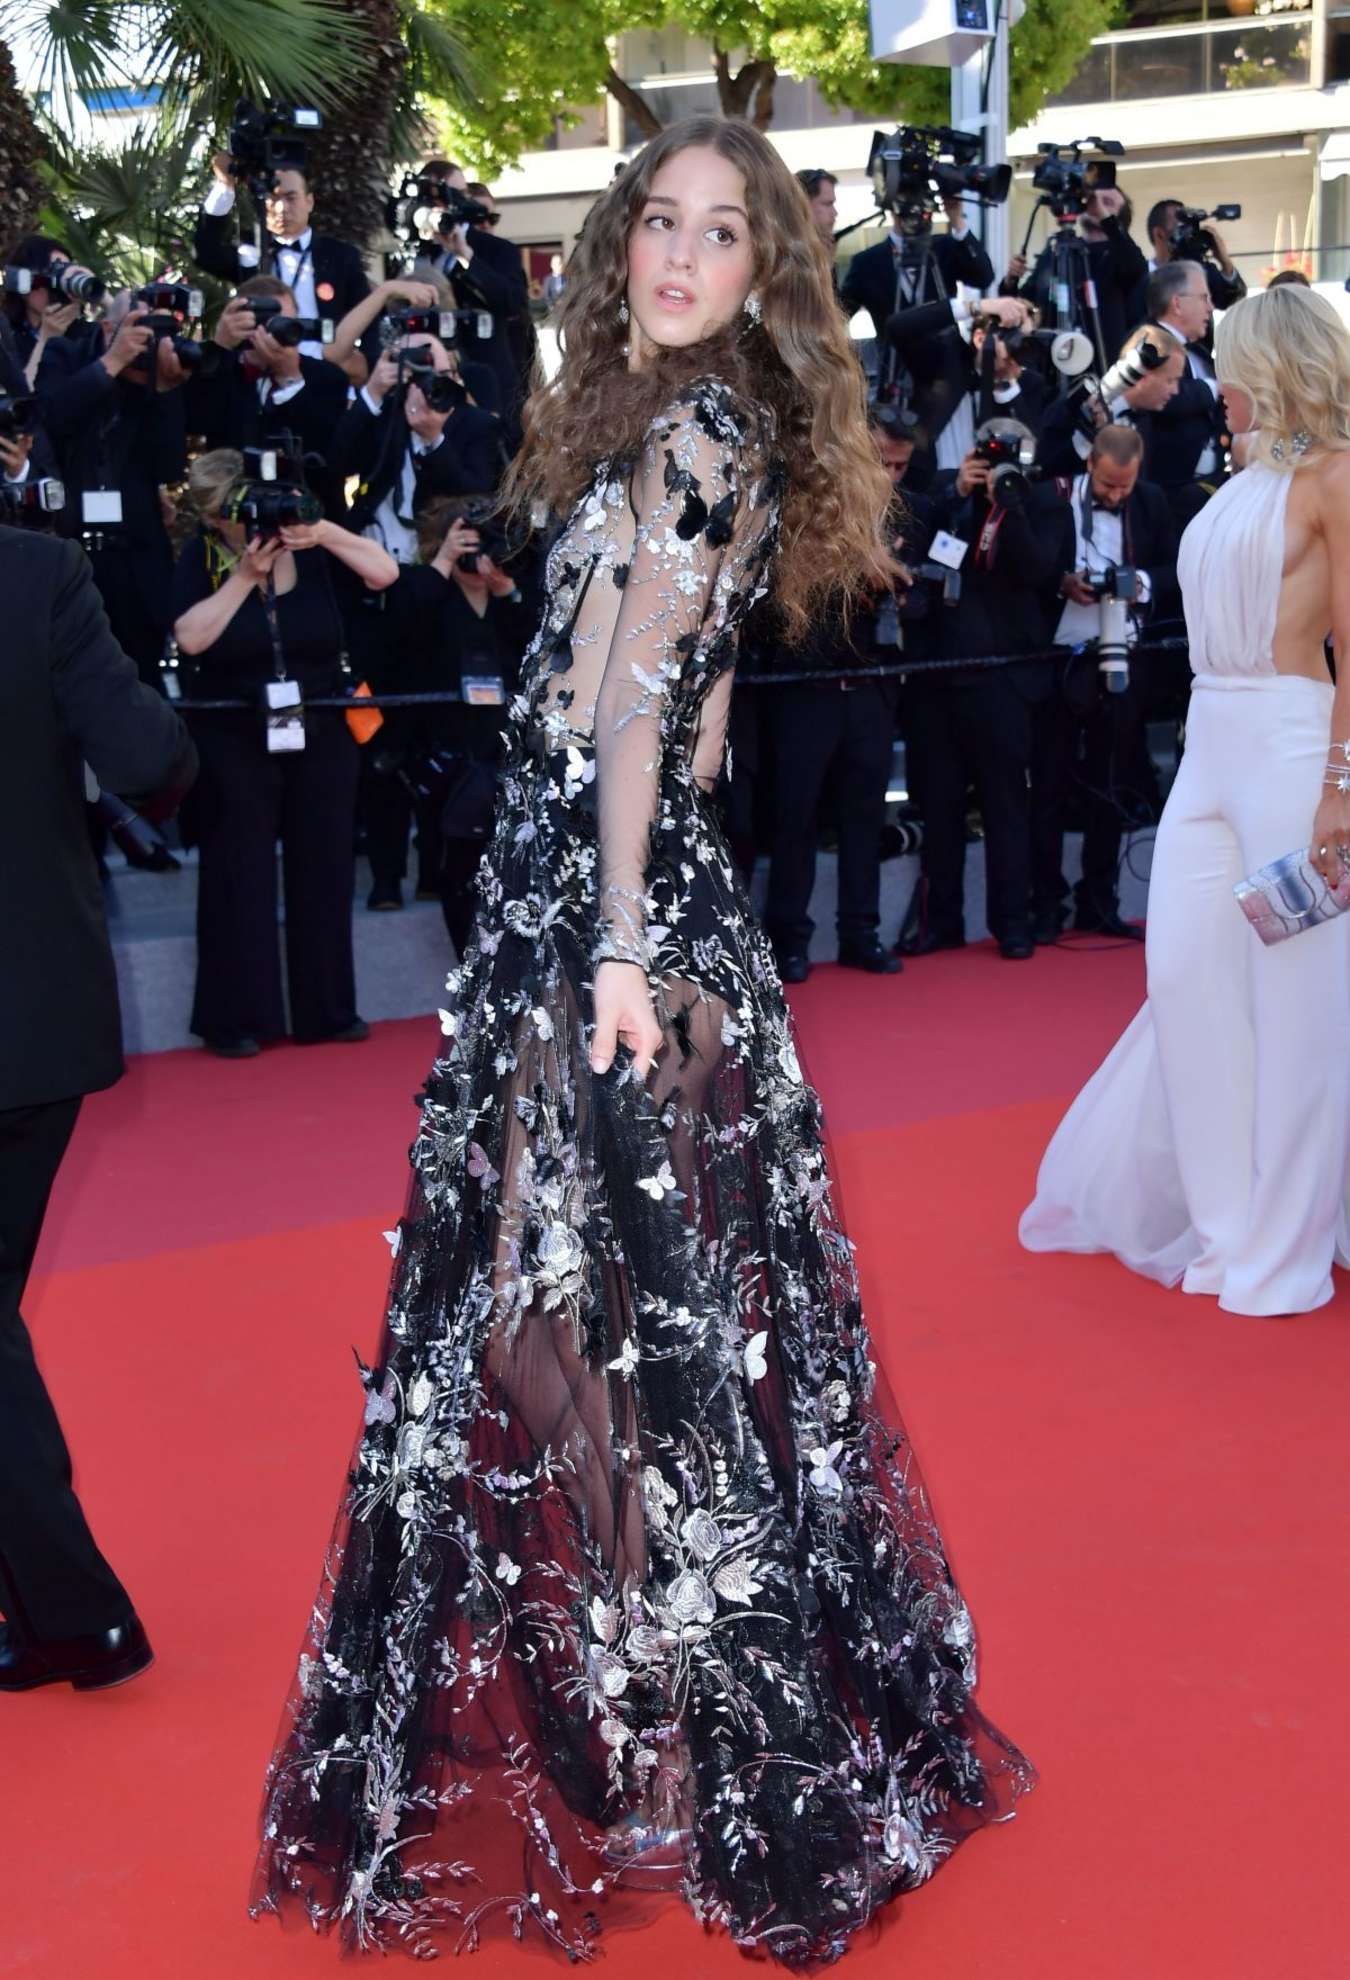 Coco konig at the premiere of loveless at 2019 cannes film festival nude (57 pic)